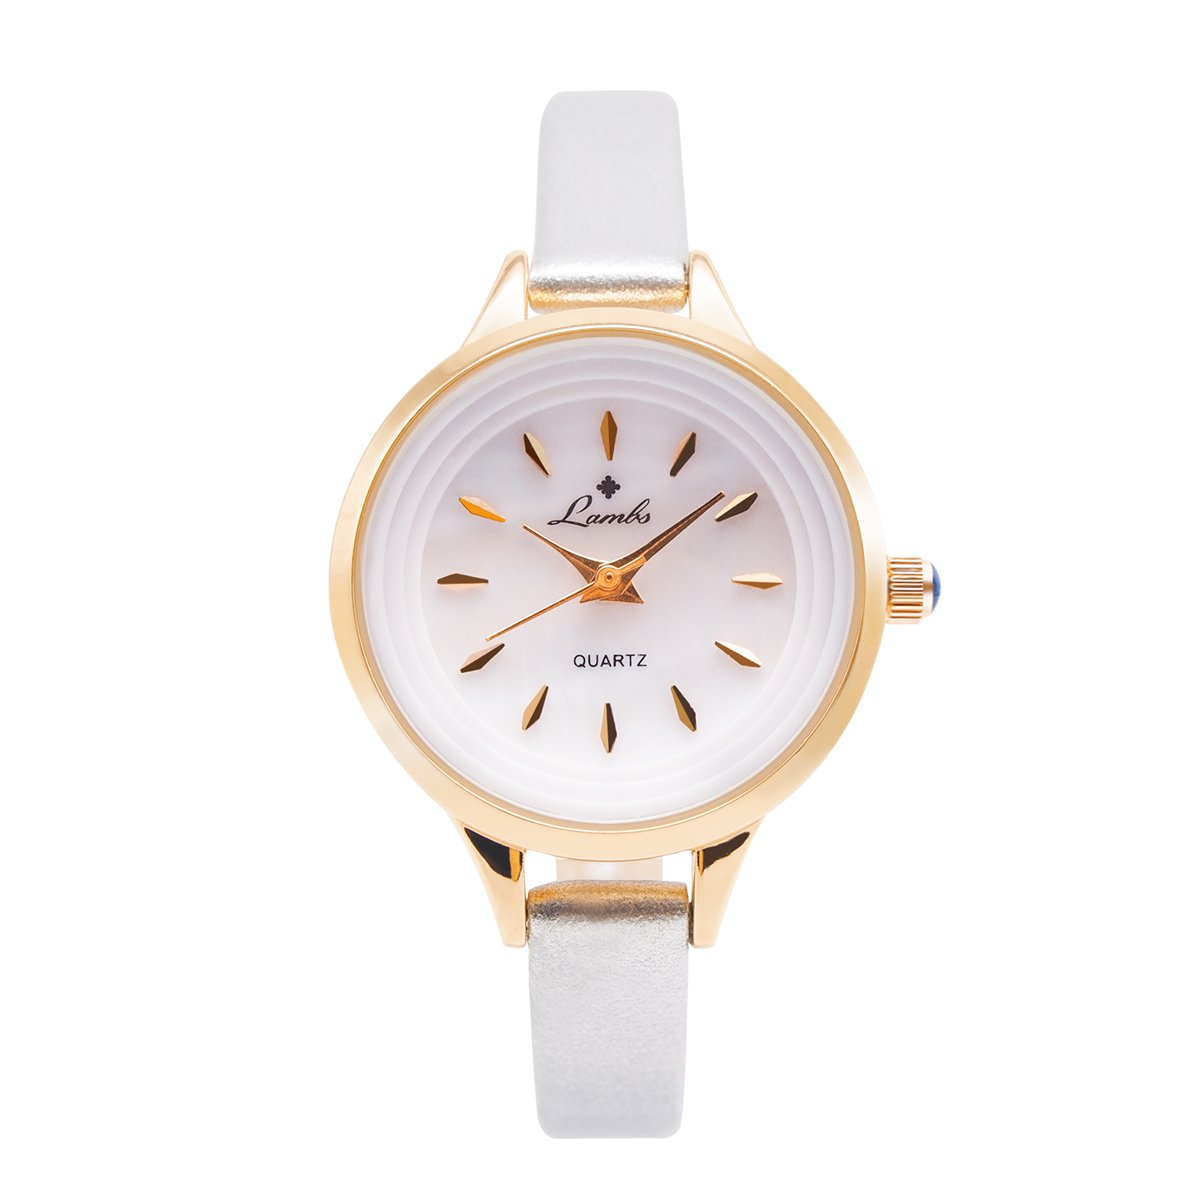 XINYIXING Ladies Watches, Waterproof Casual Fashion Watches for Women,Wrist Watches Easy to Read Times Leather Band Strap Girls Watch(Silver)